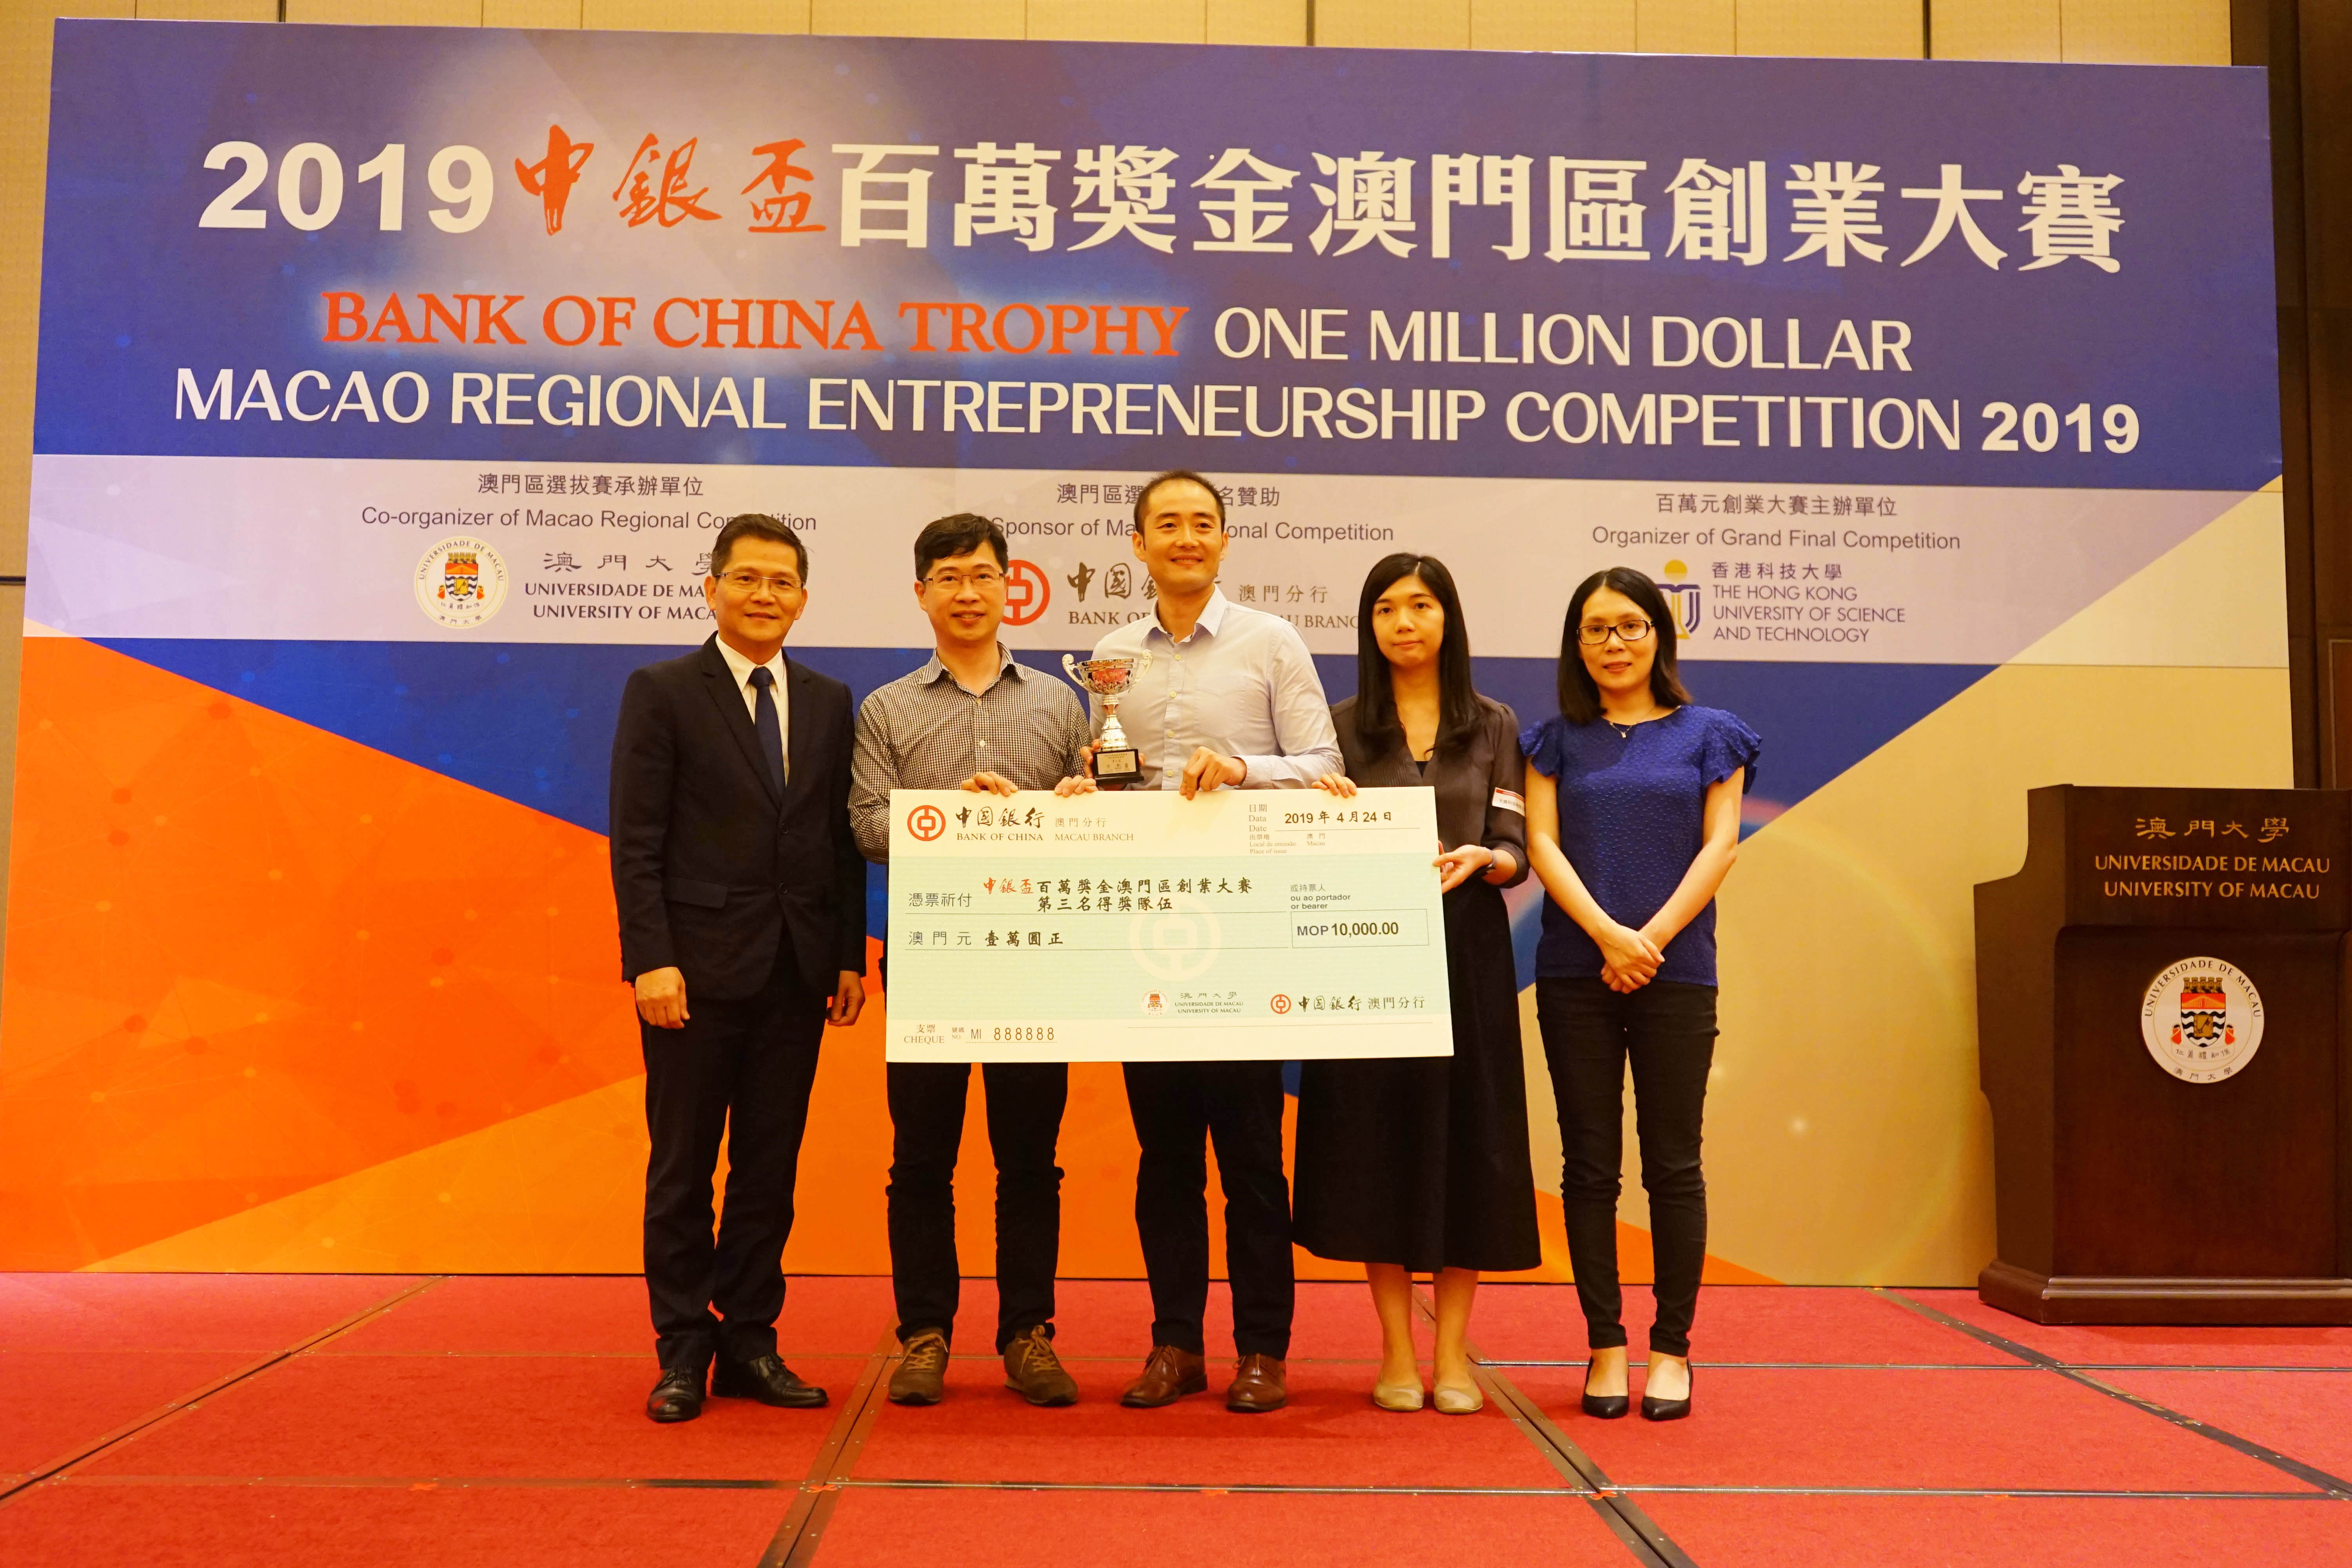 FDCT Administrative Committee member Cheang Kun Wai (1st from left) and Hoi Tong Mui from the Higher Education Bureau (1st from right) present the third prize